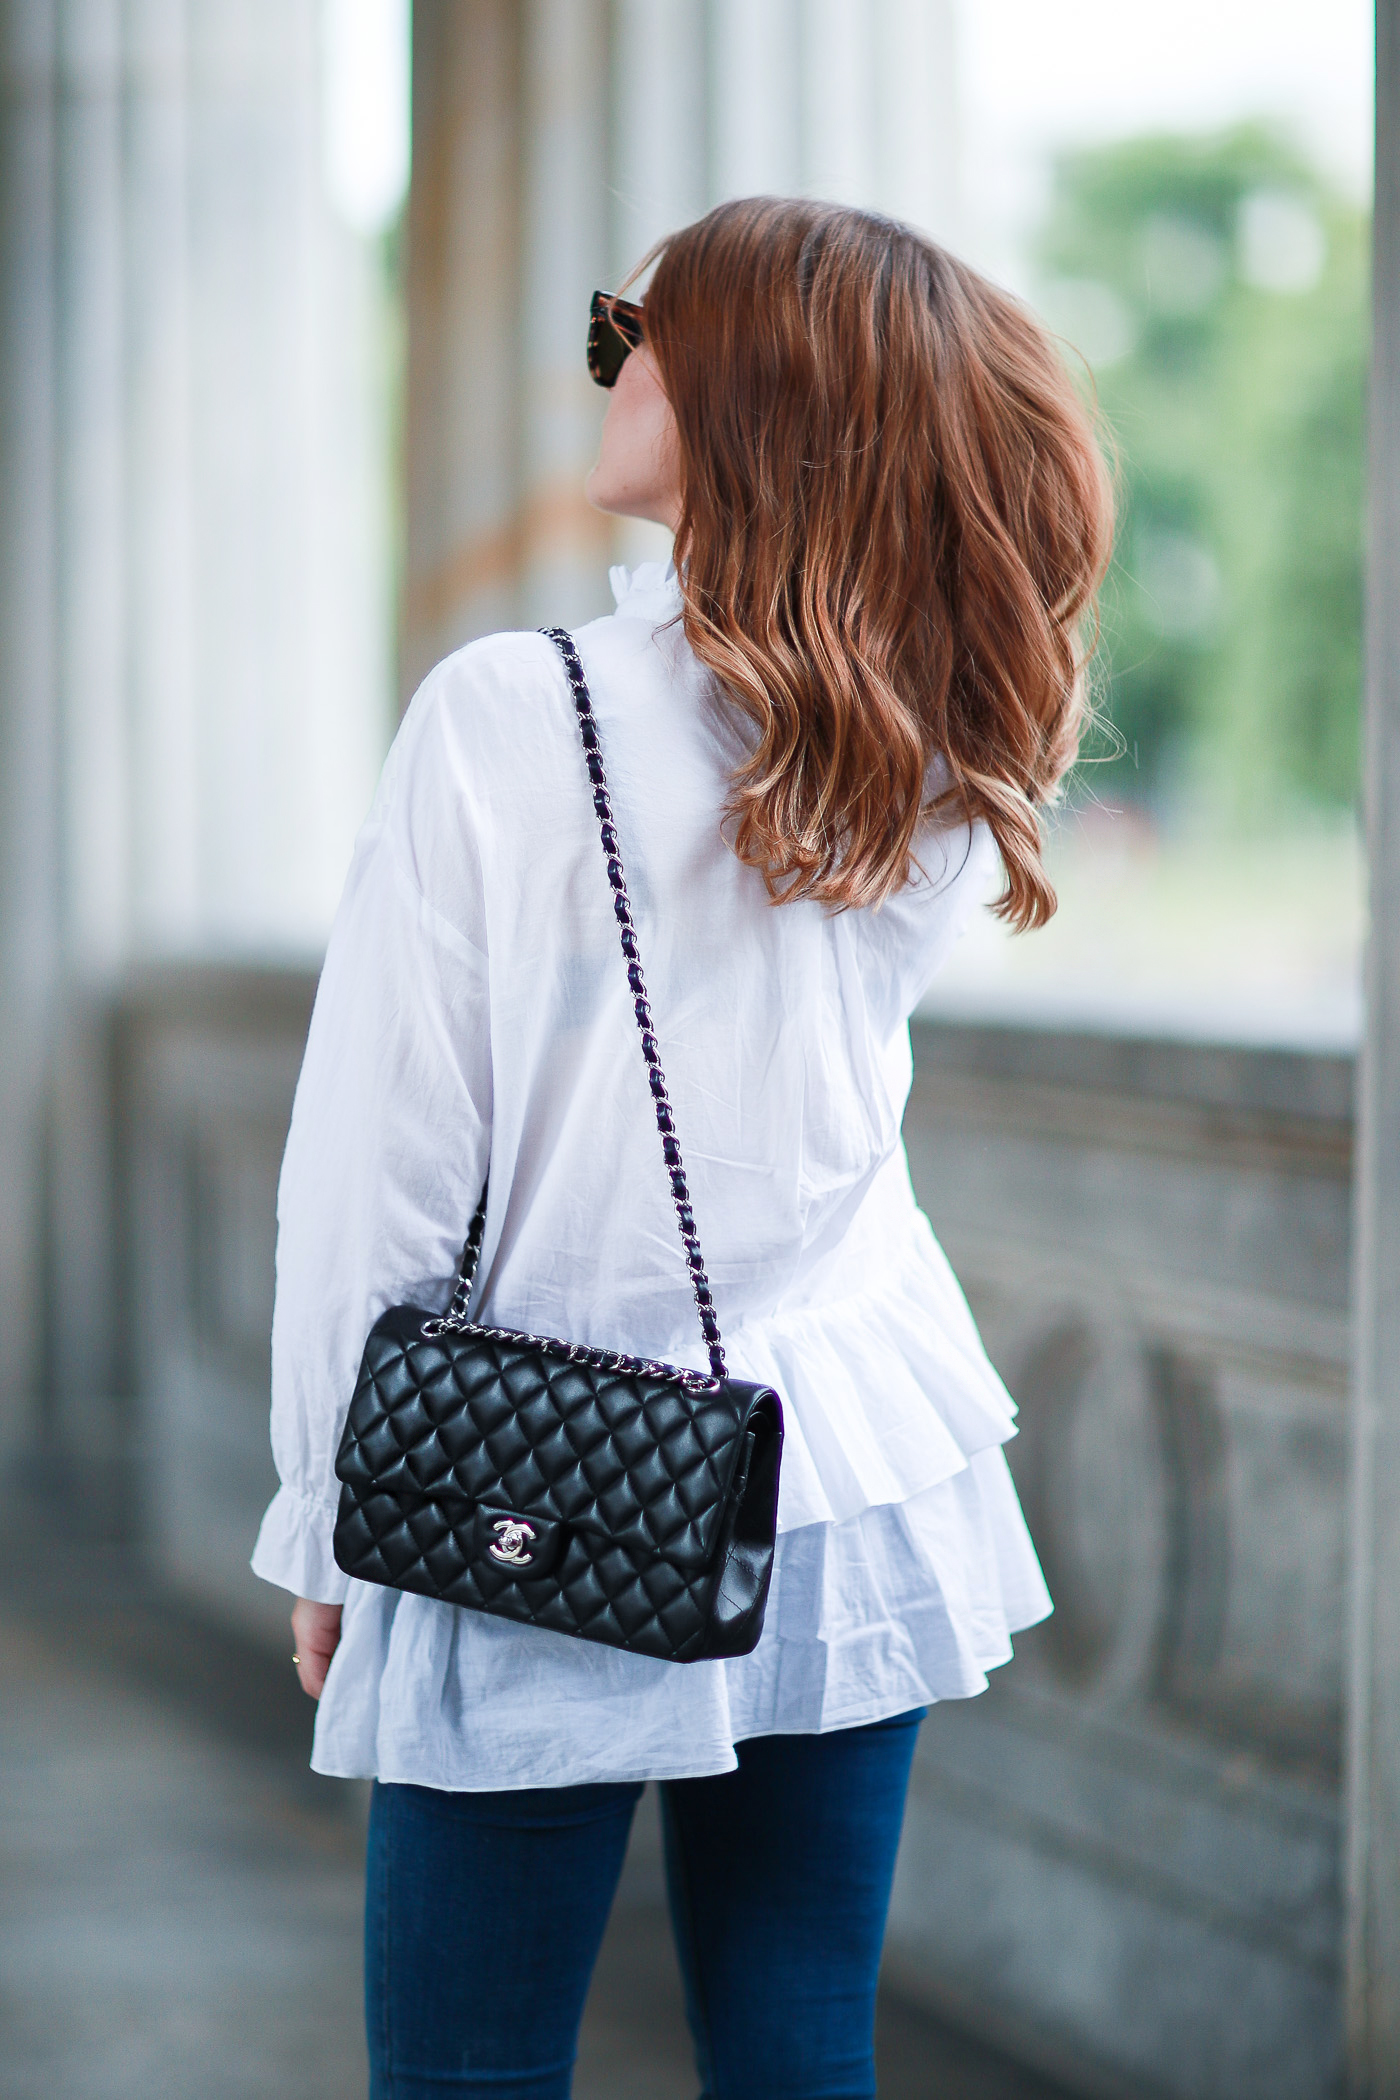 Chanel_2.55_Bag_Outfit_4